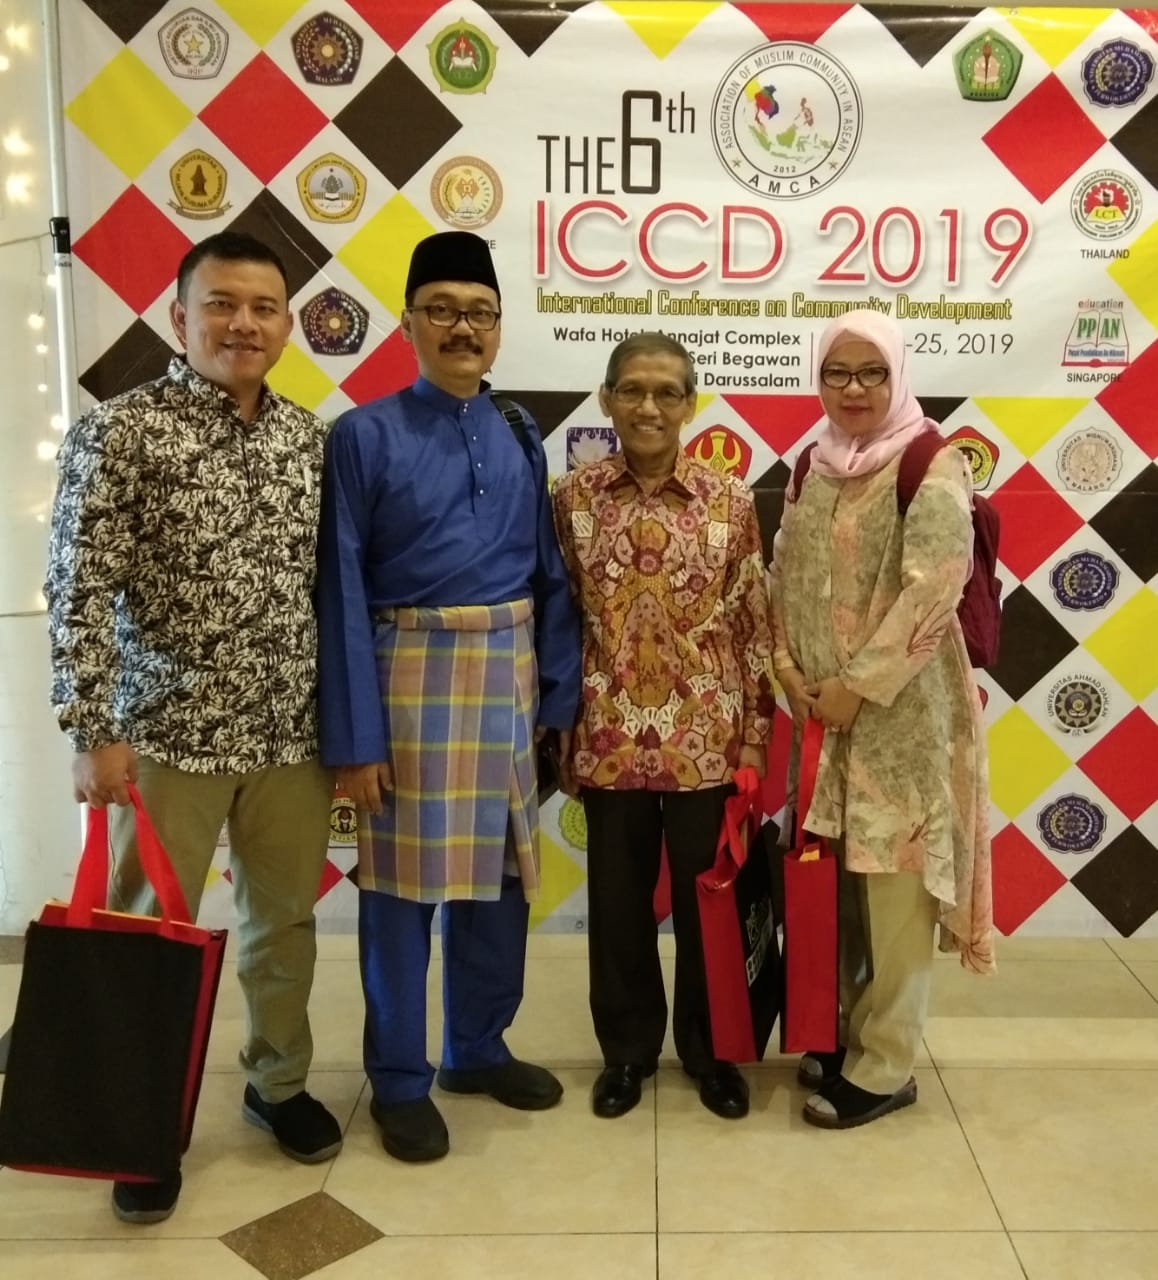 The 6th ICCD 2019